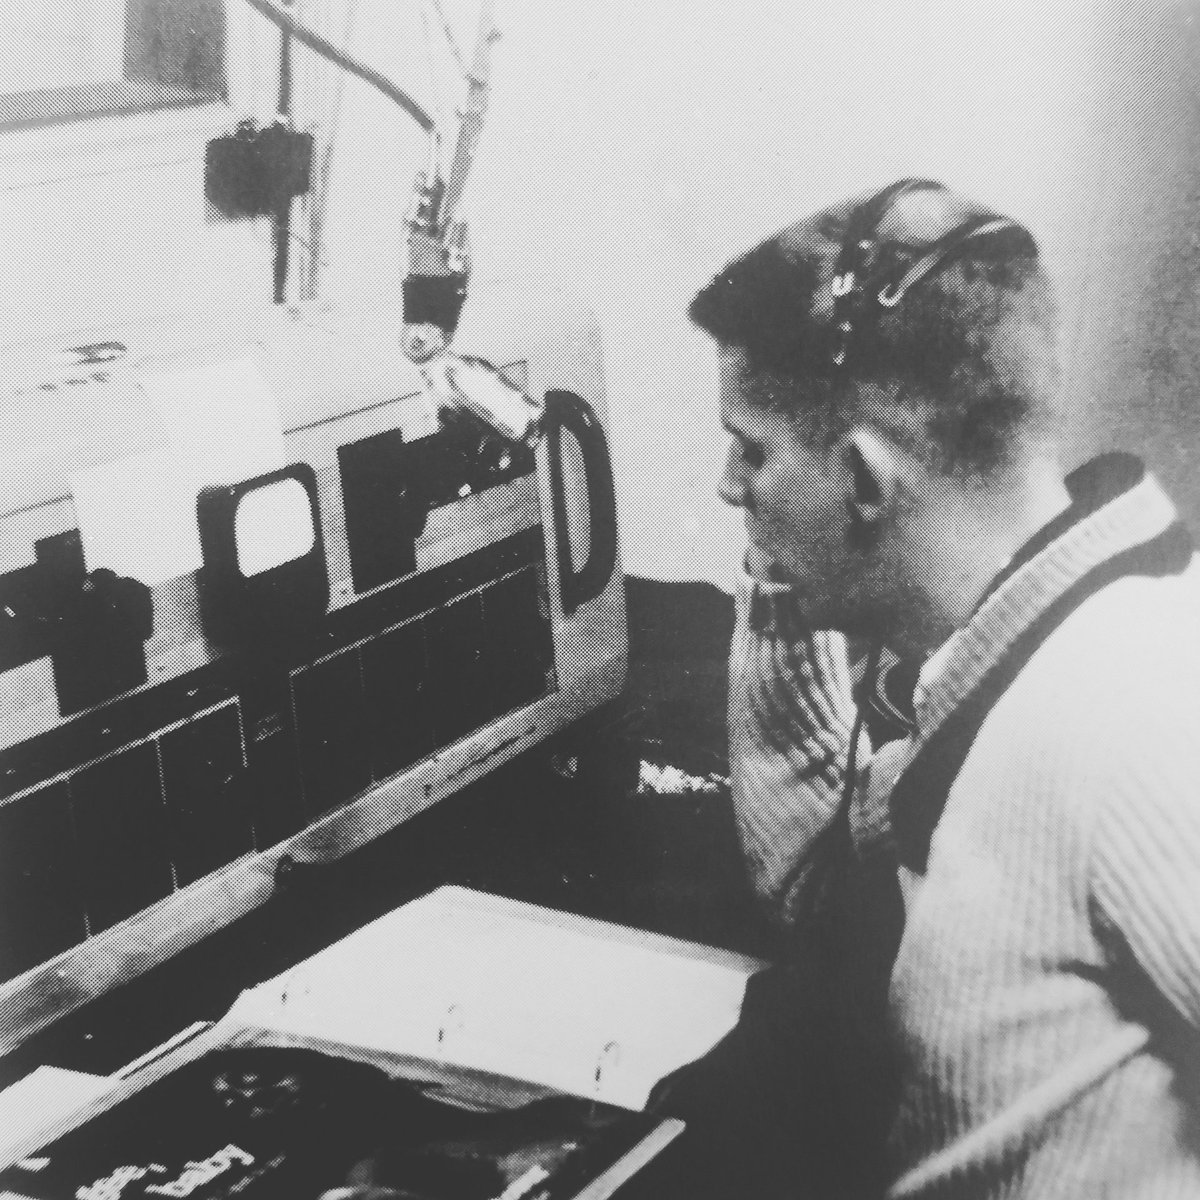 #TBT Did you know CCM started the first collegiate broadcast dept. in the country, offering radio courses in 1936? https://t.co/ITlpSxn9kT